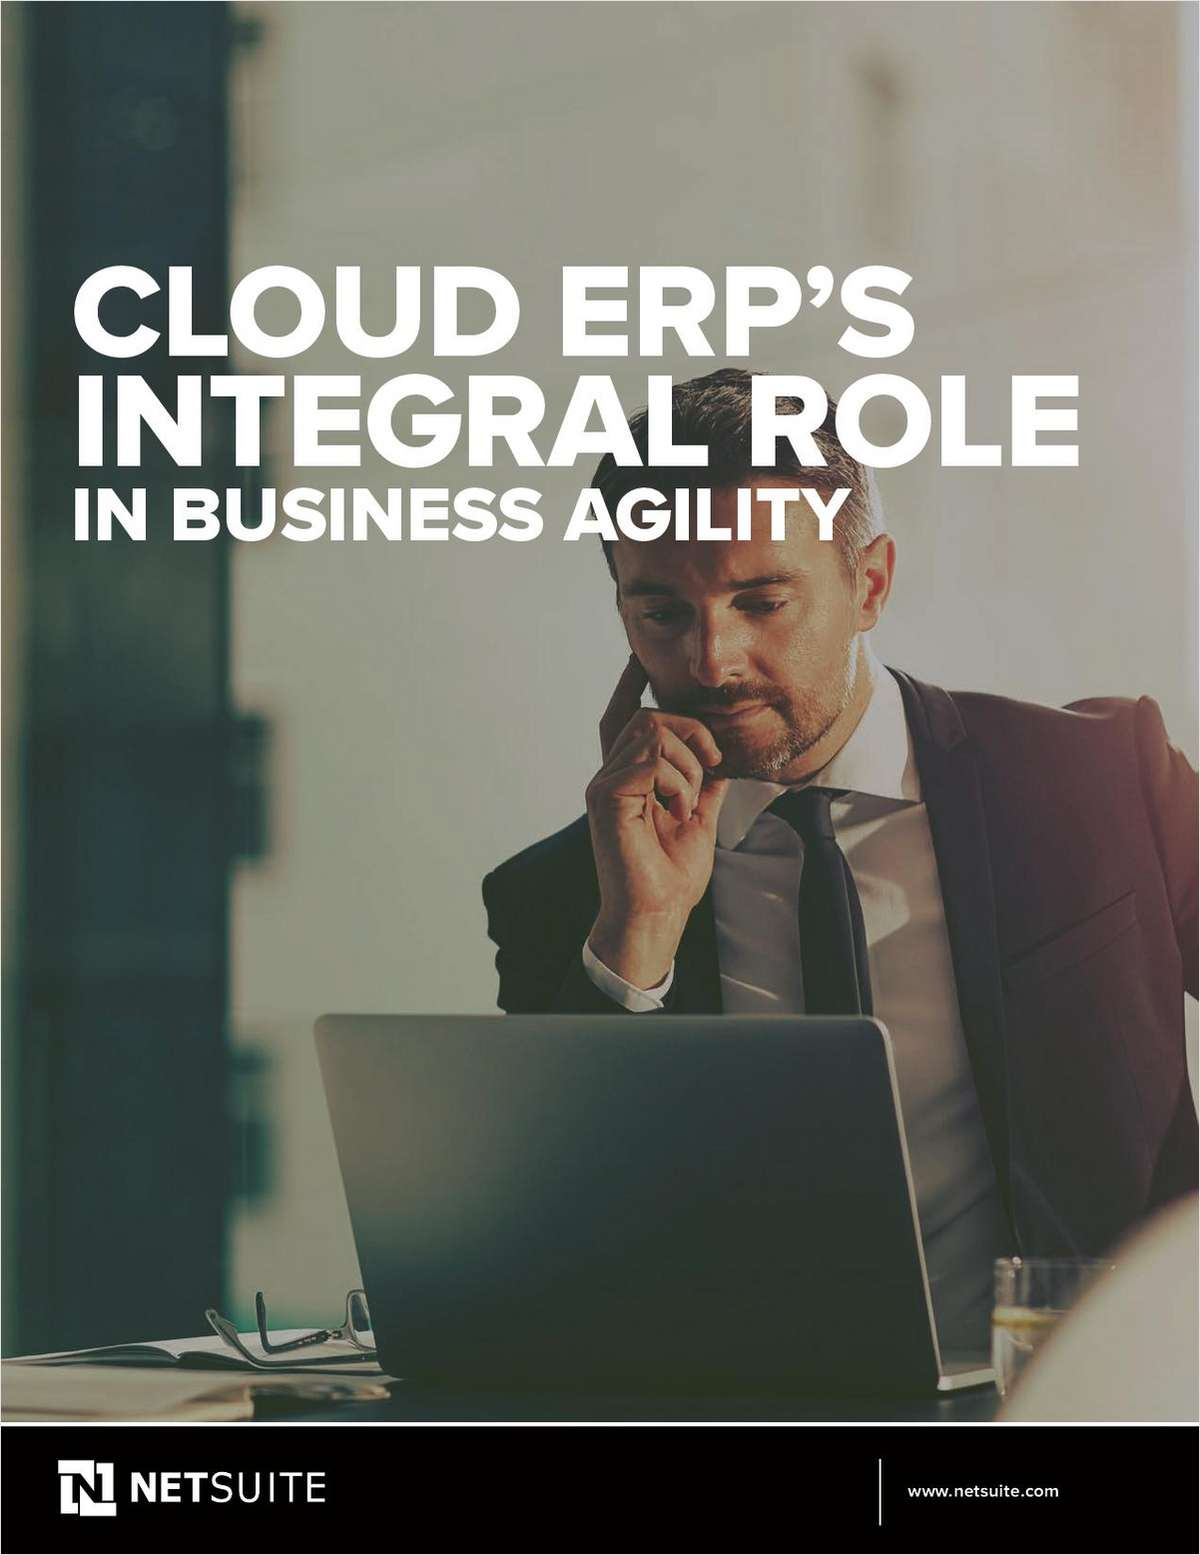 Cloud ERP's Integral Role in Business Agility